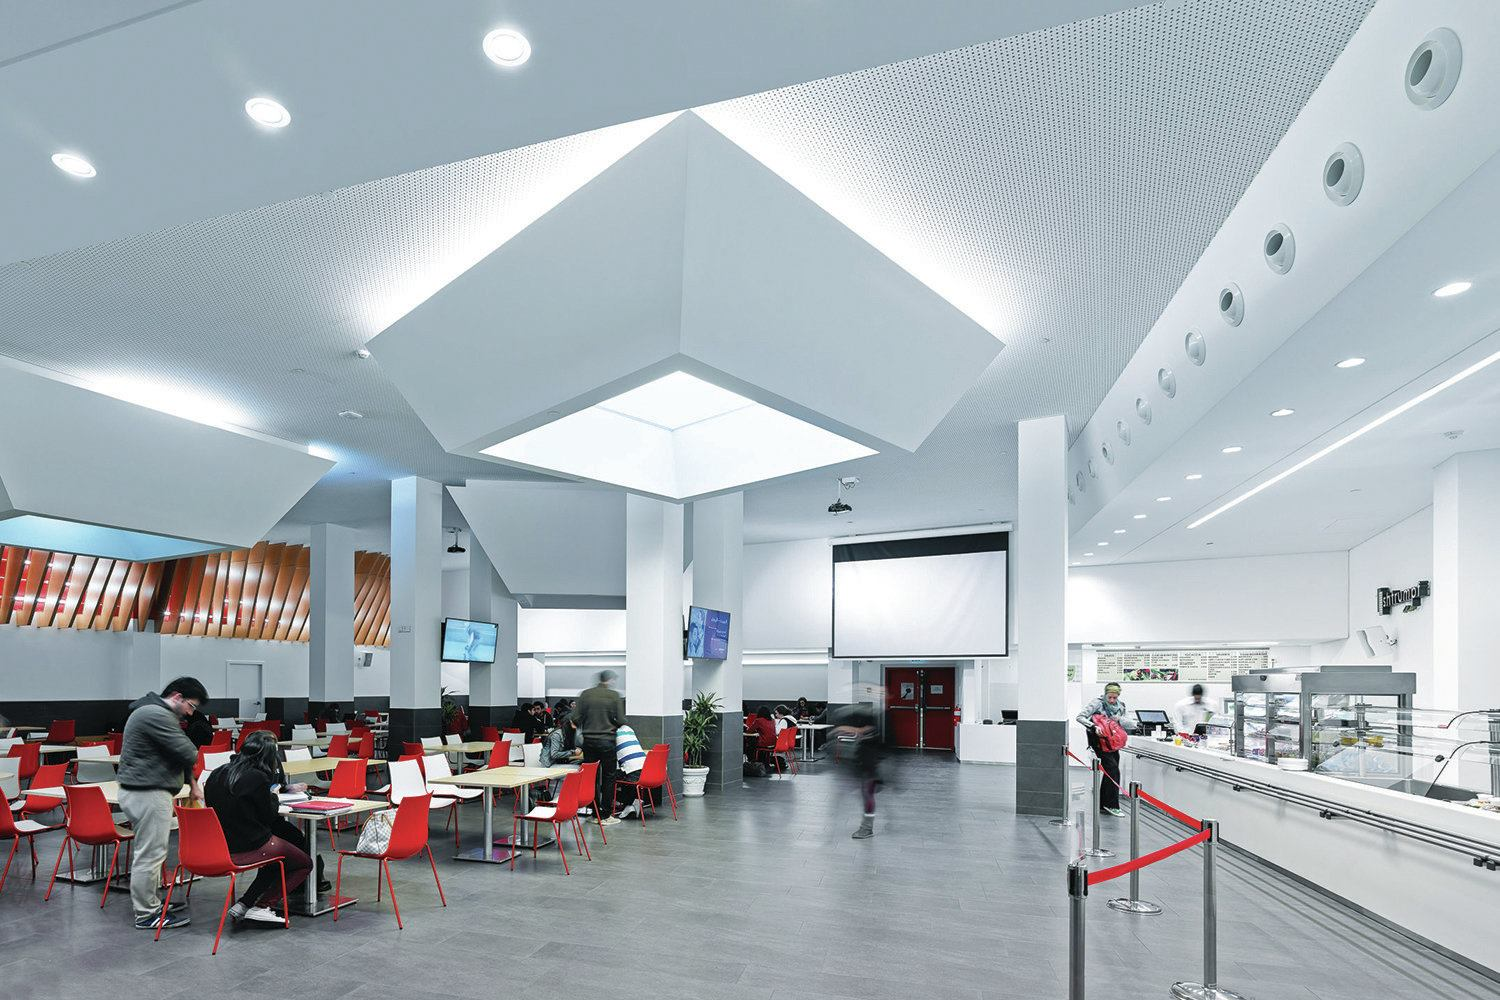 Bright Spot Lau Student Center Architectural Lighting